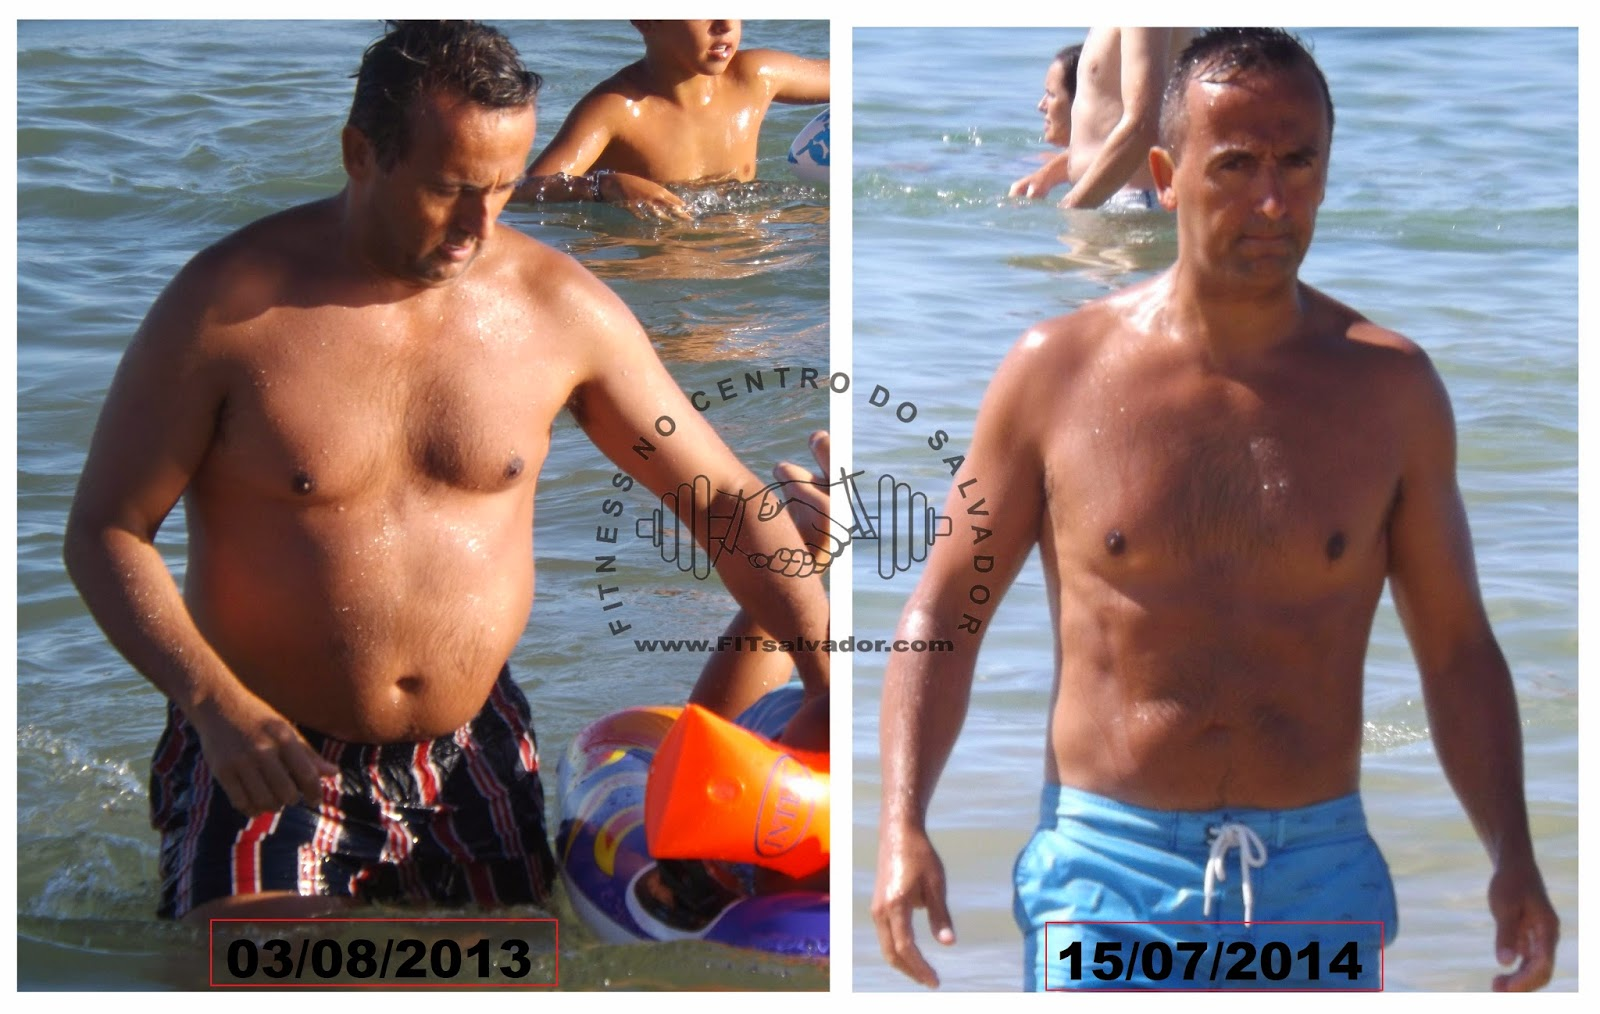 http://www.fitsalvador.com/2014/07/FIT-Lab-red-line-equal-FAT-LOSS.html